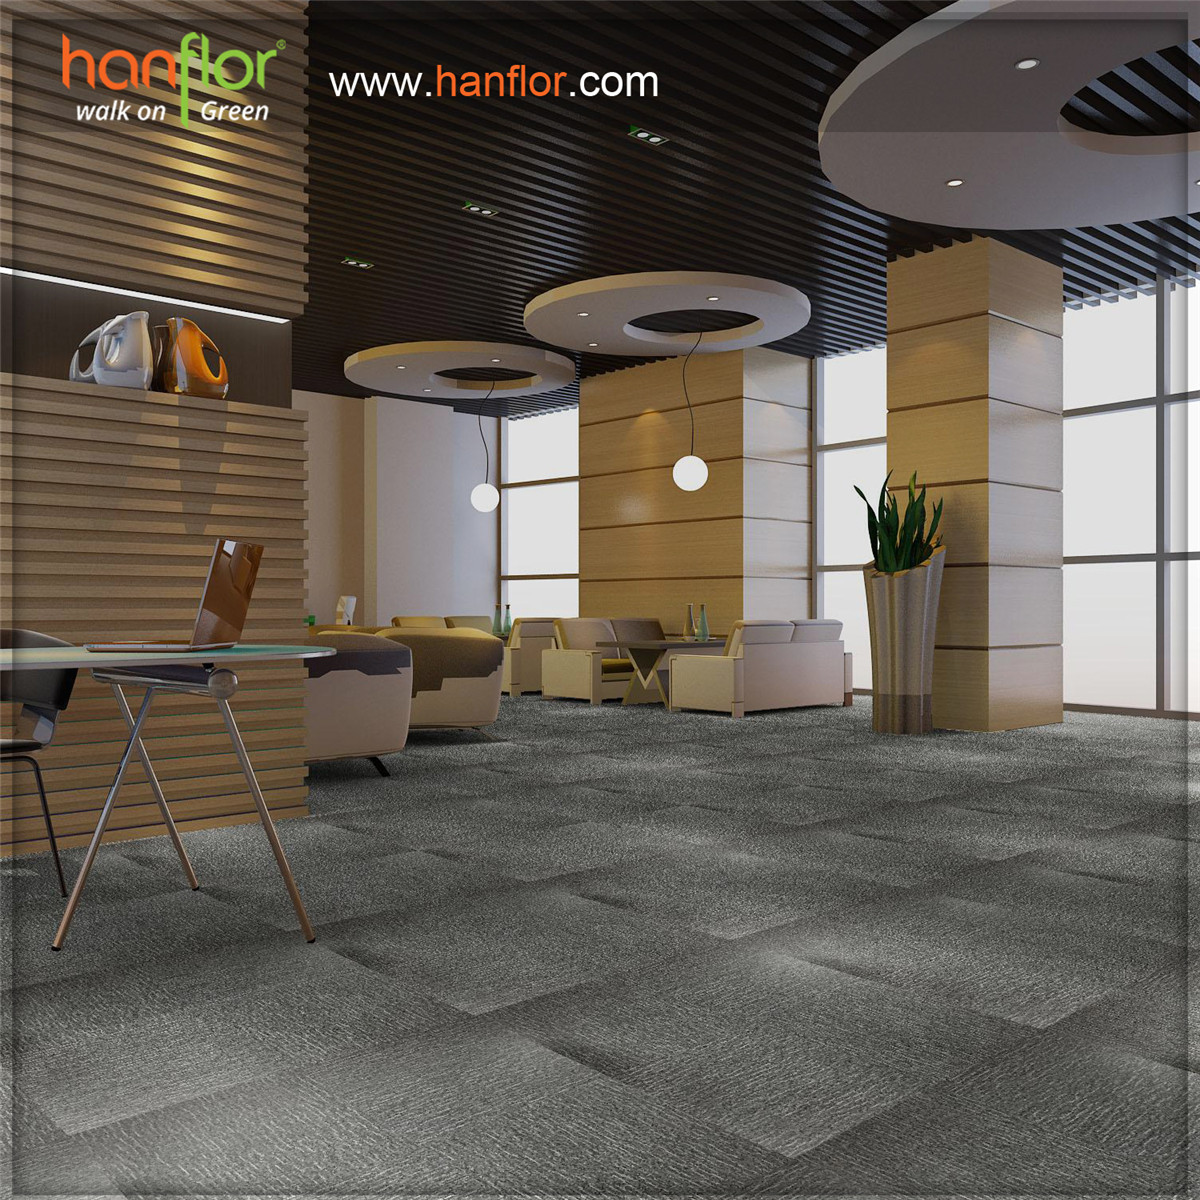 3.Pictures of products: We Hanhent hanflor with many different colors for clients, thousands colors are available for our pvc floor, with same specification of the pvc floor, the colors can be different. We also provide the design service. Hanhent hanflor pvc floor Plastic flooring, pvc floor, vinyl floor, plastic flooring, pvc flooring Flooring, unilin click vinyl flooring, click pvc flooring, interlocking pvc flooring, unilin click vinyl flooring, unilin click pvc flooring